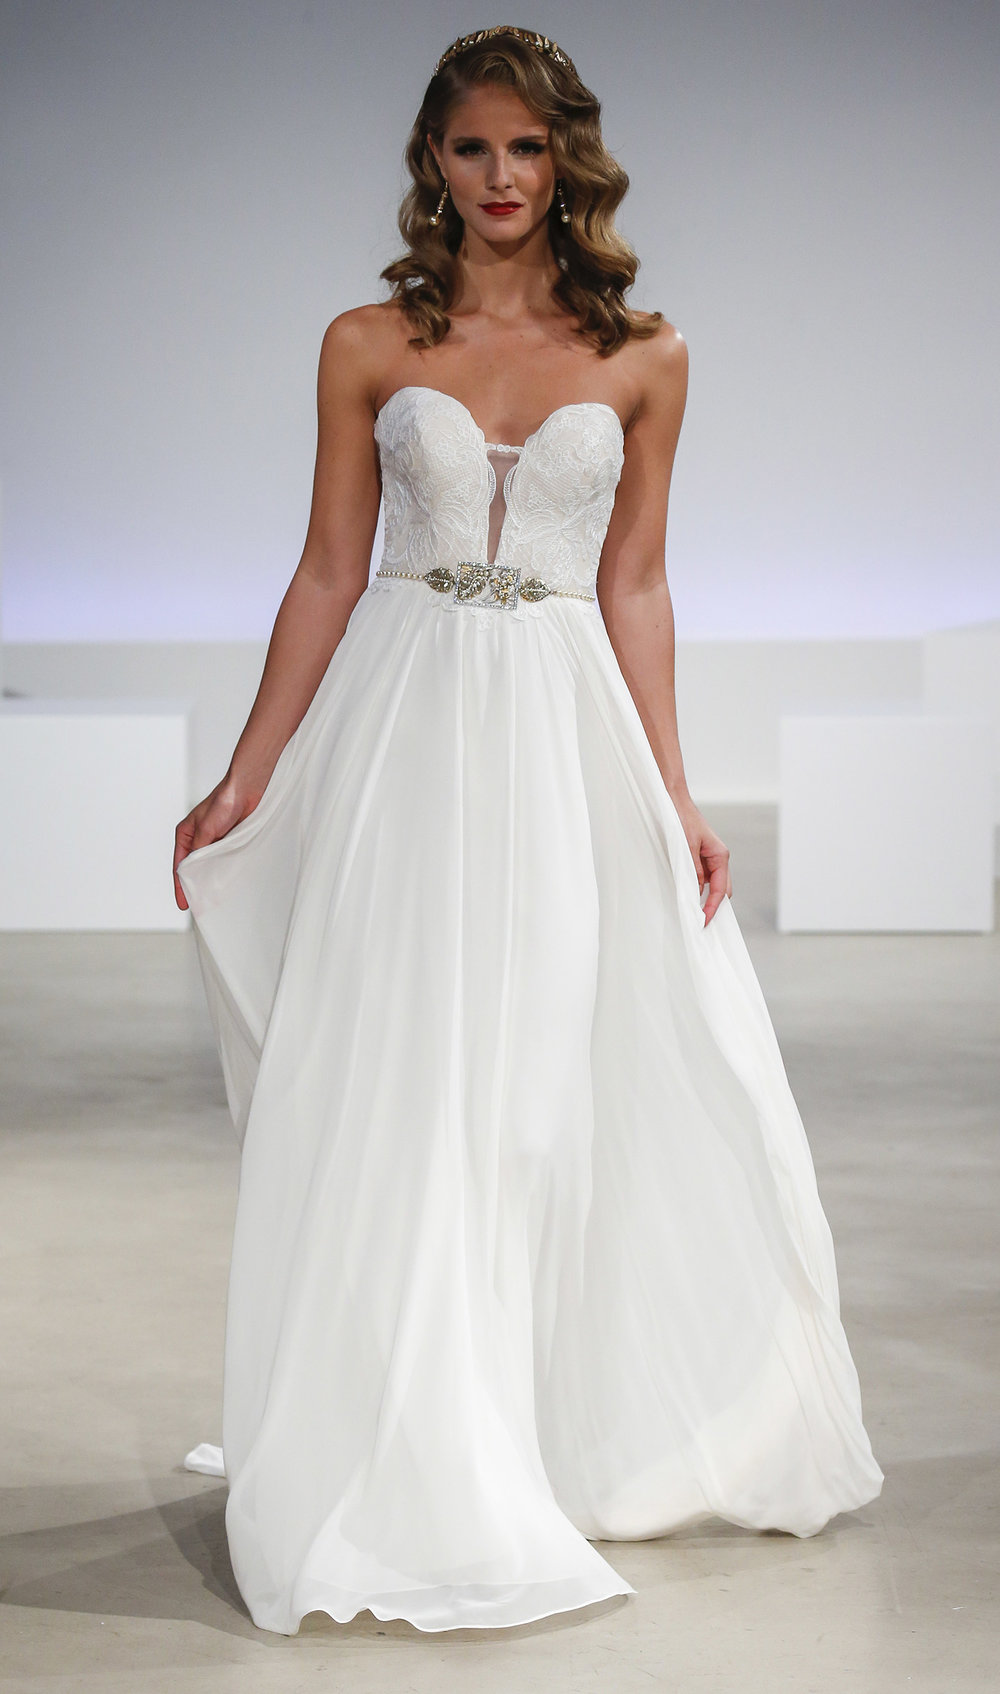 Season: Fall 2017    Gown Name: Olive    Description: A strapless bodice with plunging neckline and sheer back of embroidery with flowing chiffon skirt.